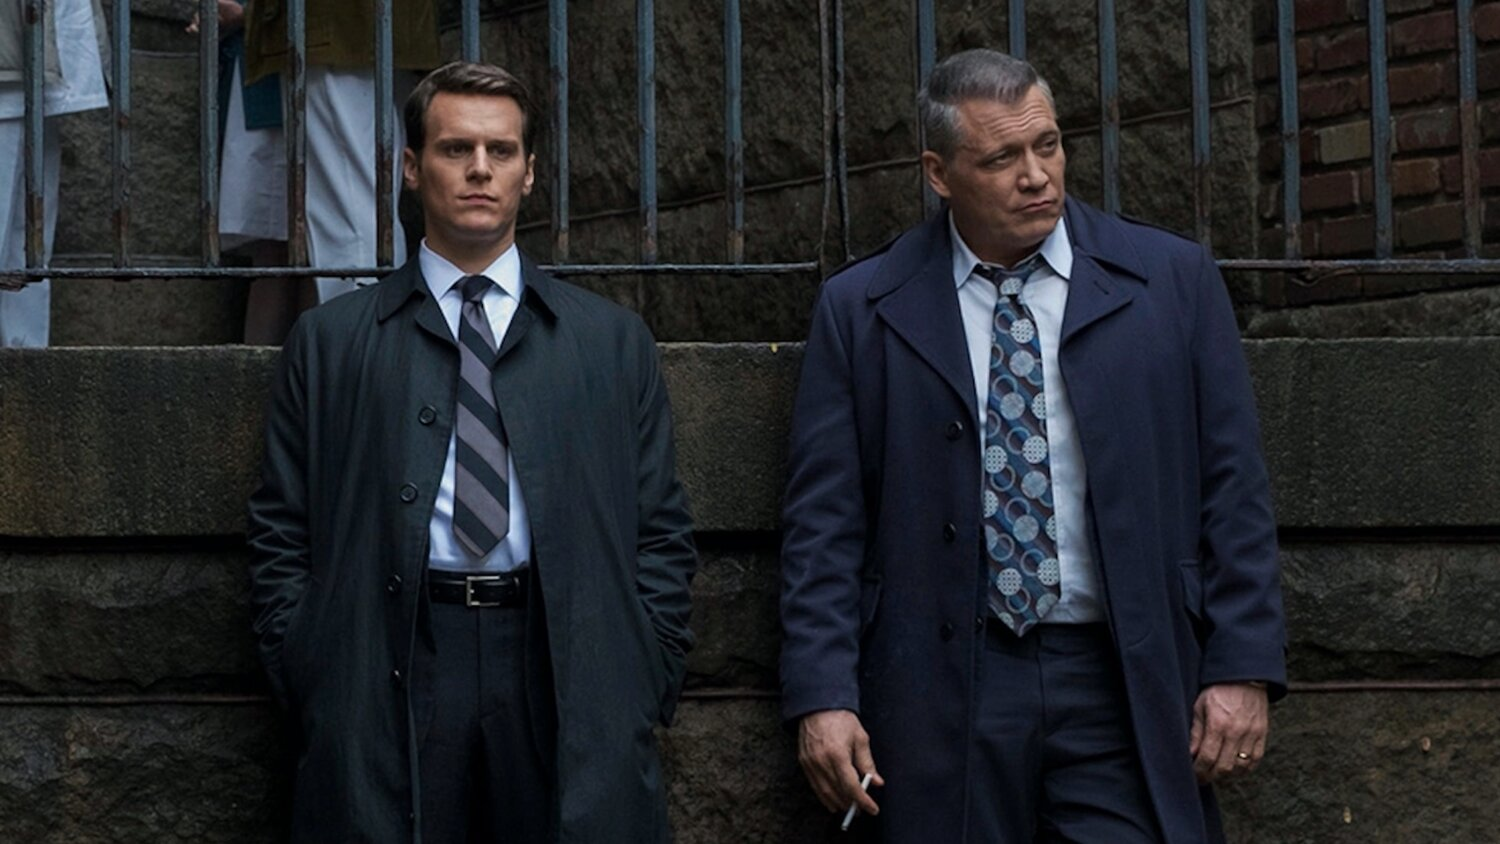 david-fincher-and-netflix-are-reportedly-having-discussions-about-mindhunter-season-3.jpg